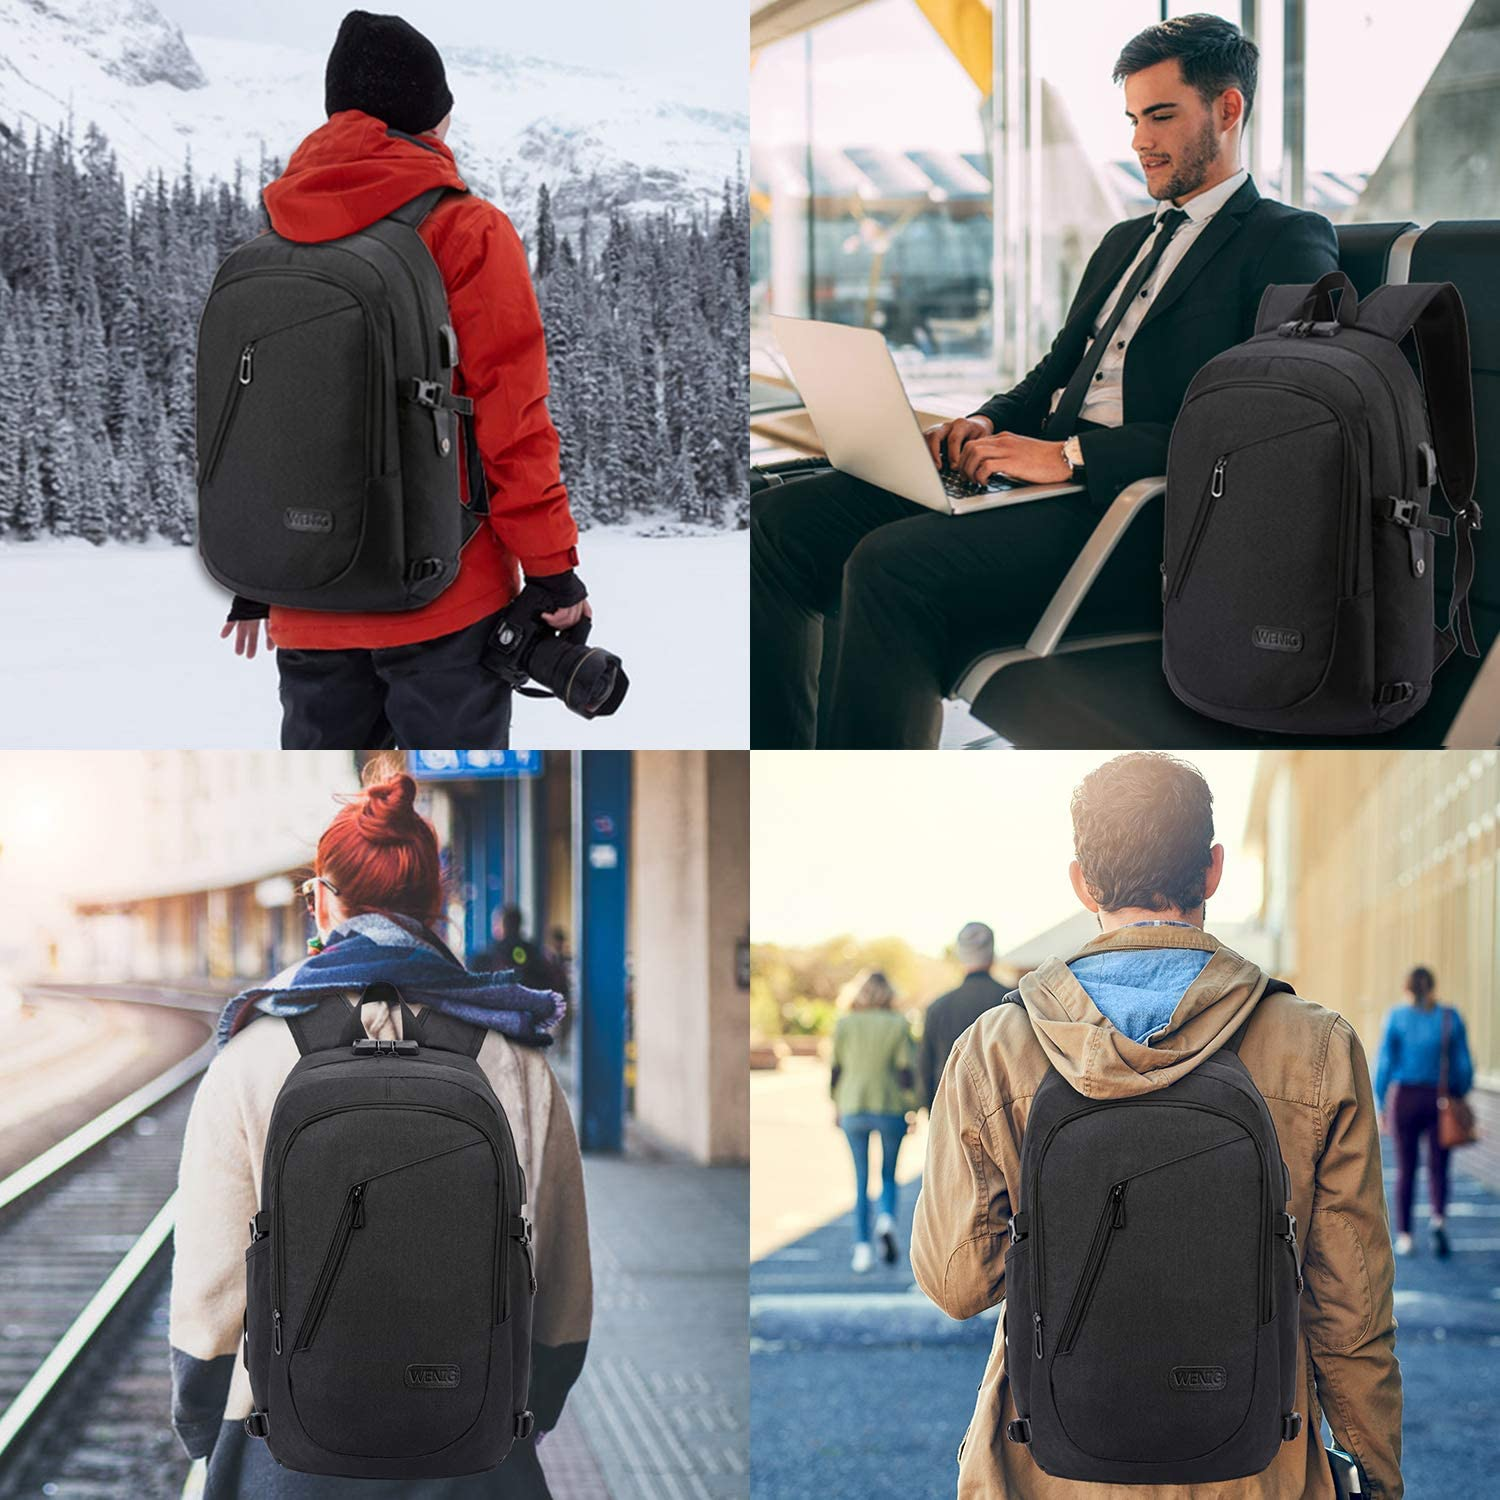 Laptop Backpack,Business Travel Anti Theft Backpack Gift for Men Women with USB Charging Port Lock,Slim Durable Water Resistant College School Bookbag Computer Bag Fits 15.6 Inch Laptop Notebook: Computers & Accessories